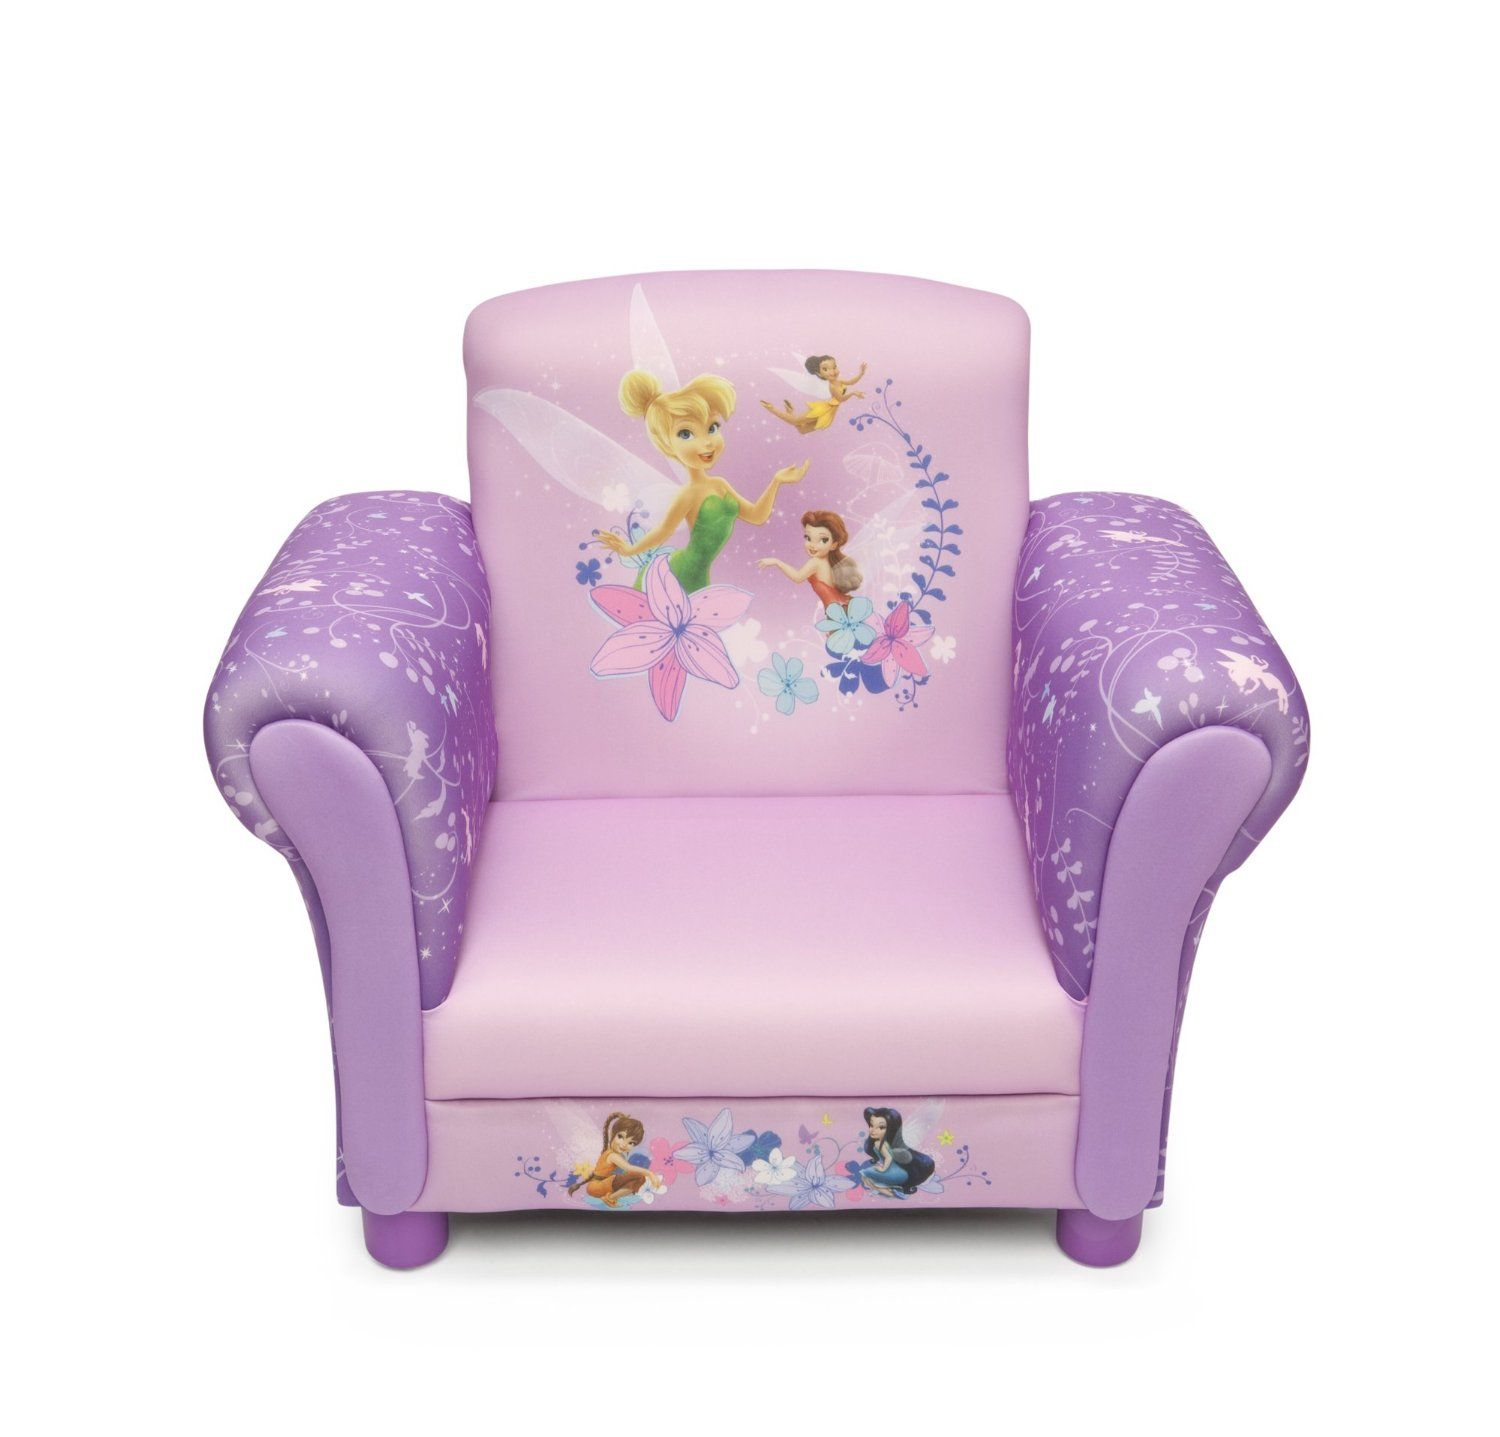 Best Disney Fairies Upholstered Chair Amazon Co Uk Baby My Prayple Purple Upholstered Chairs 400 x 300